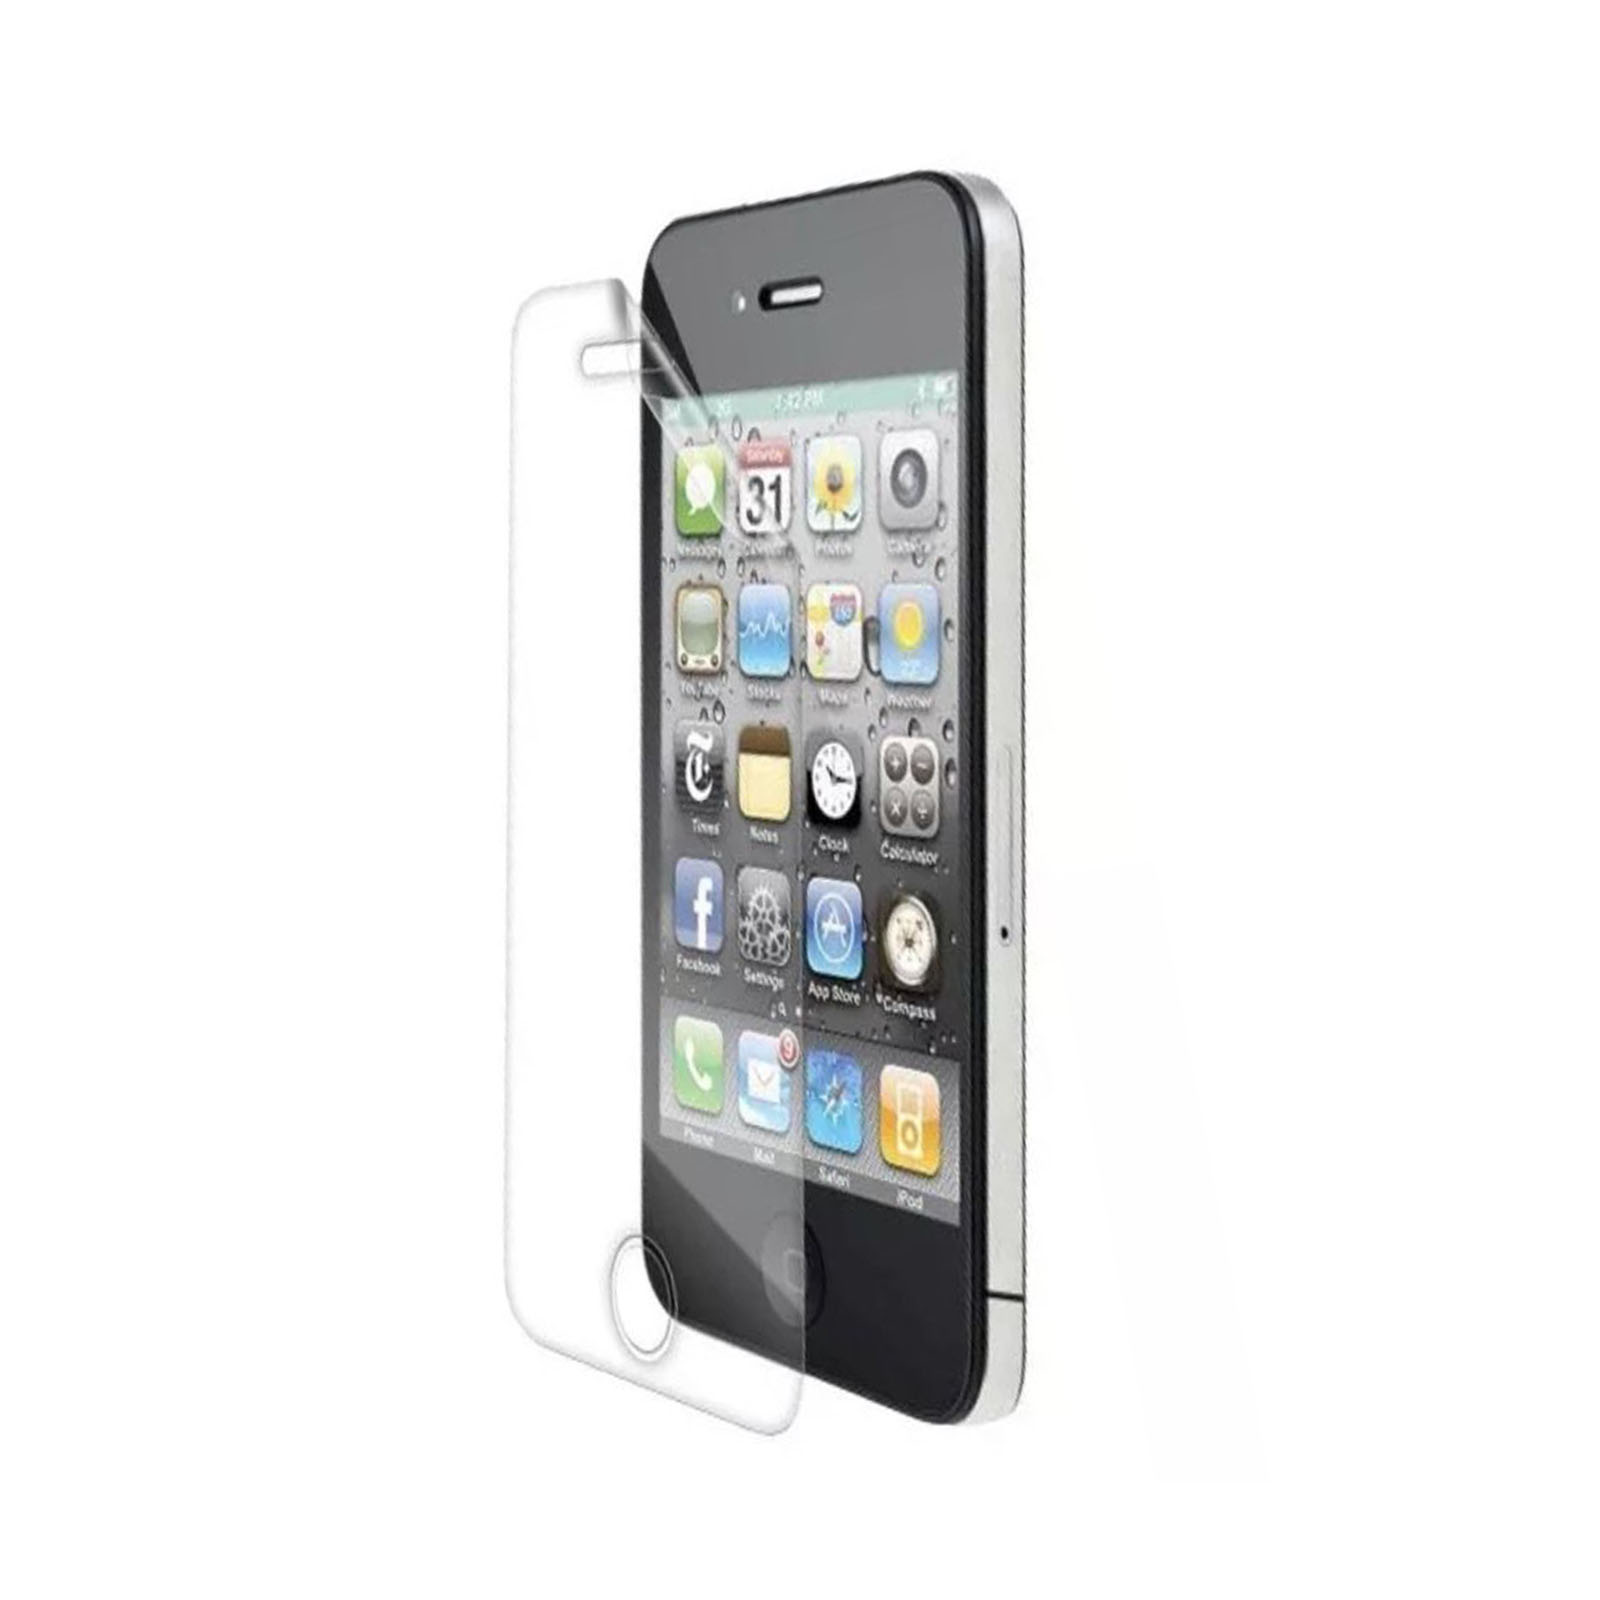 iPhone 4/4S Screen Protection